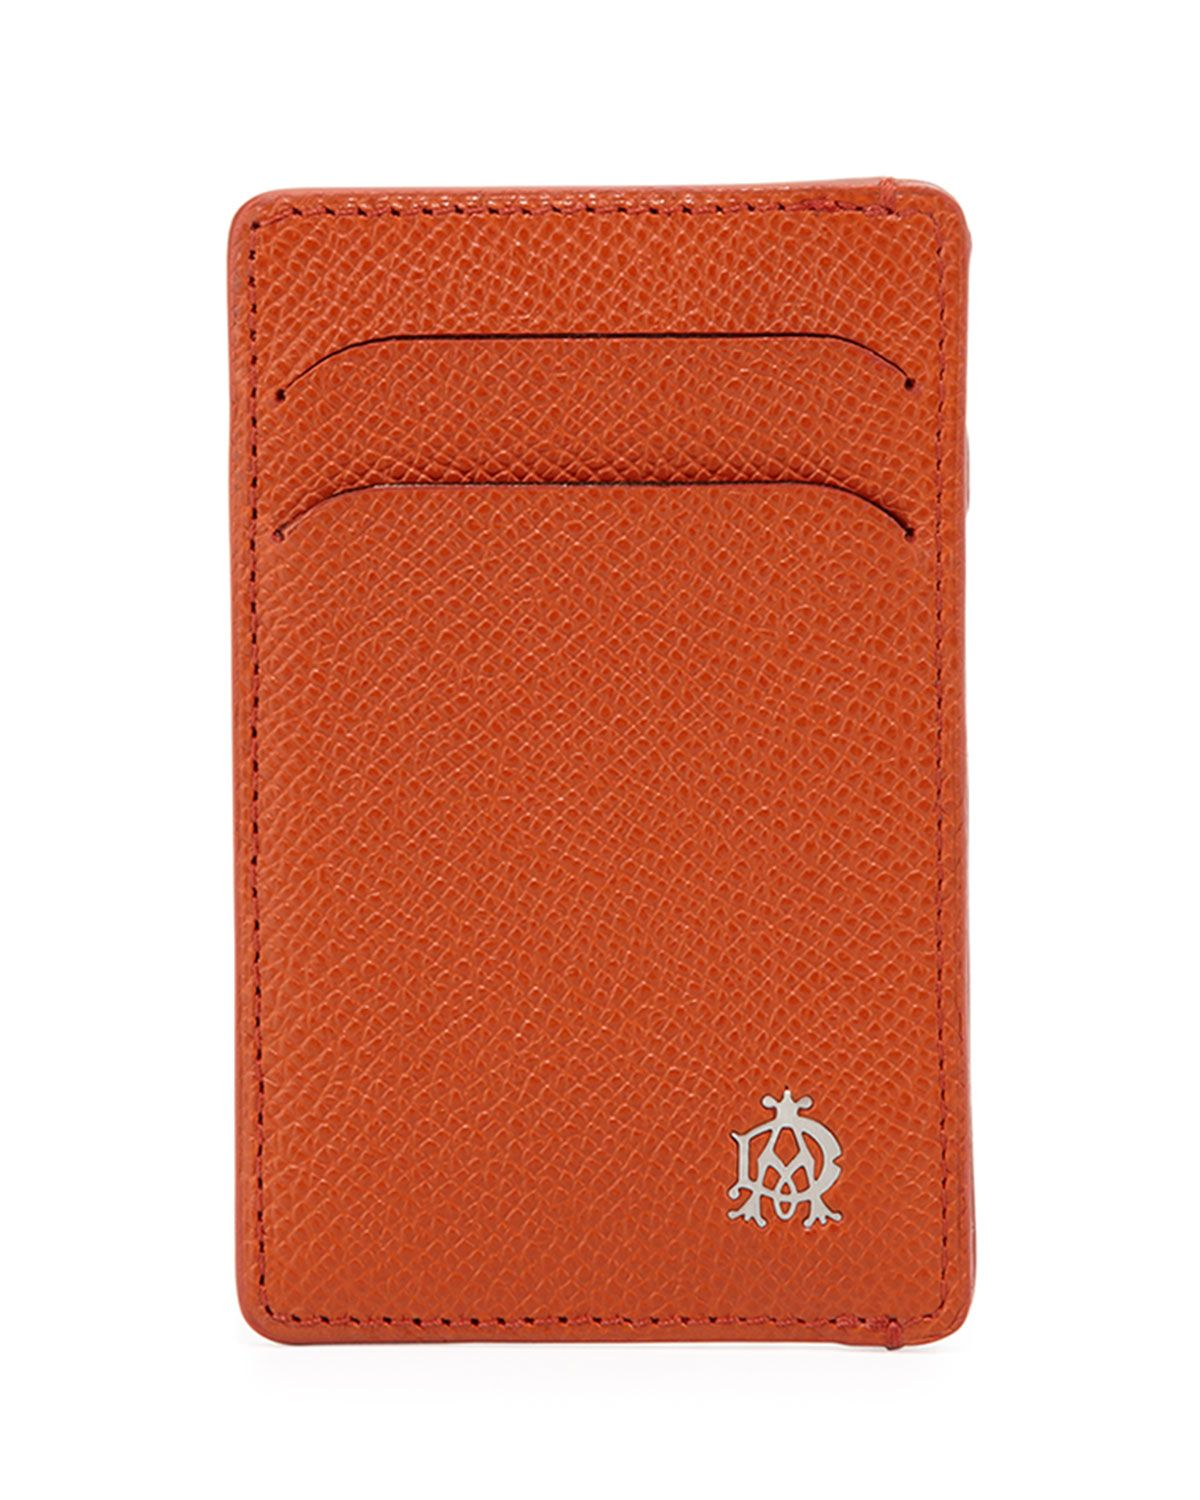 Bourdon Leather Card Case, Orange, Men\'s - dunhill | *Handbags ...